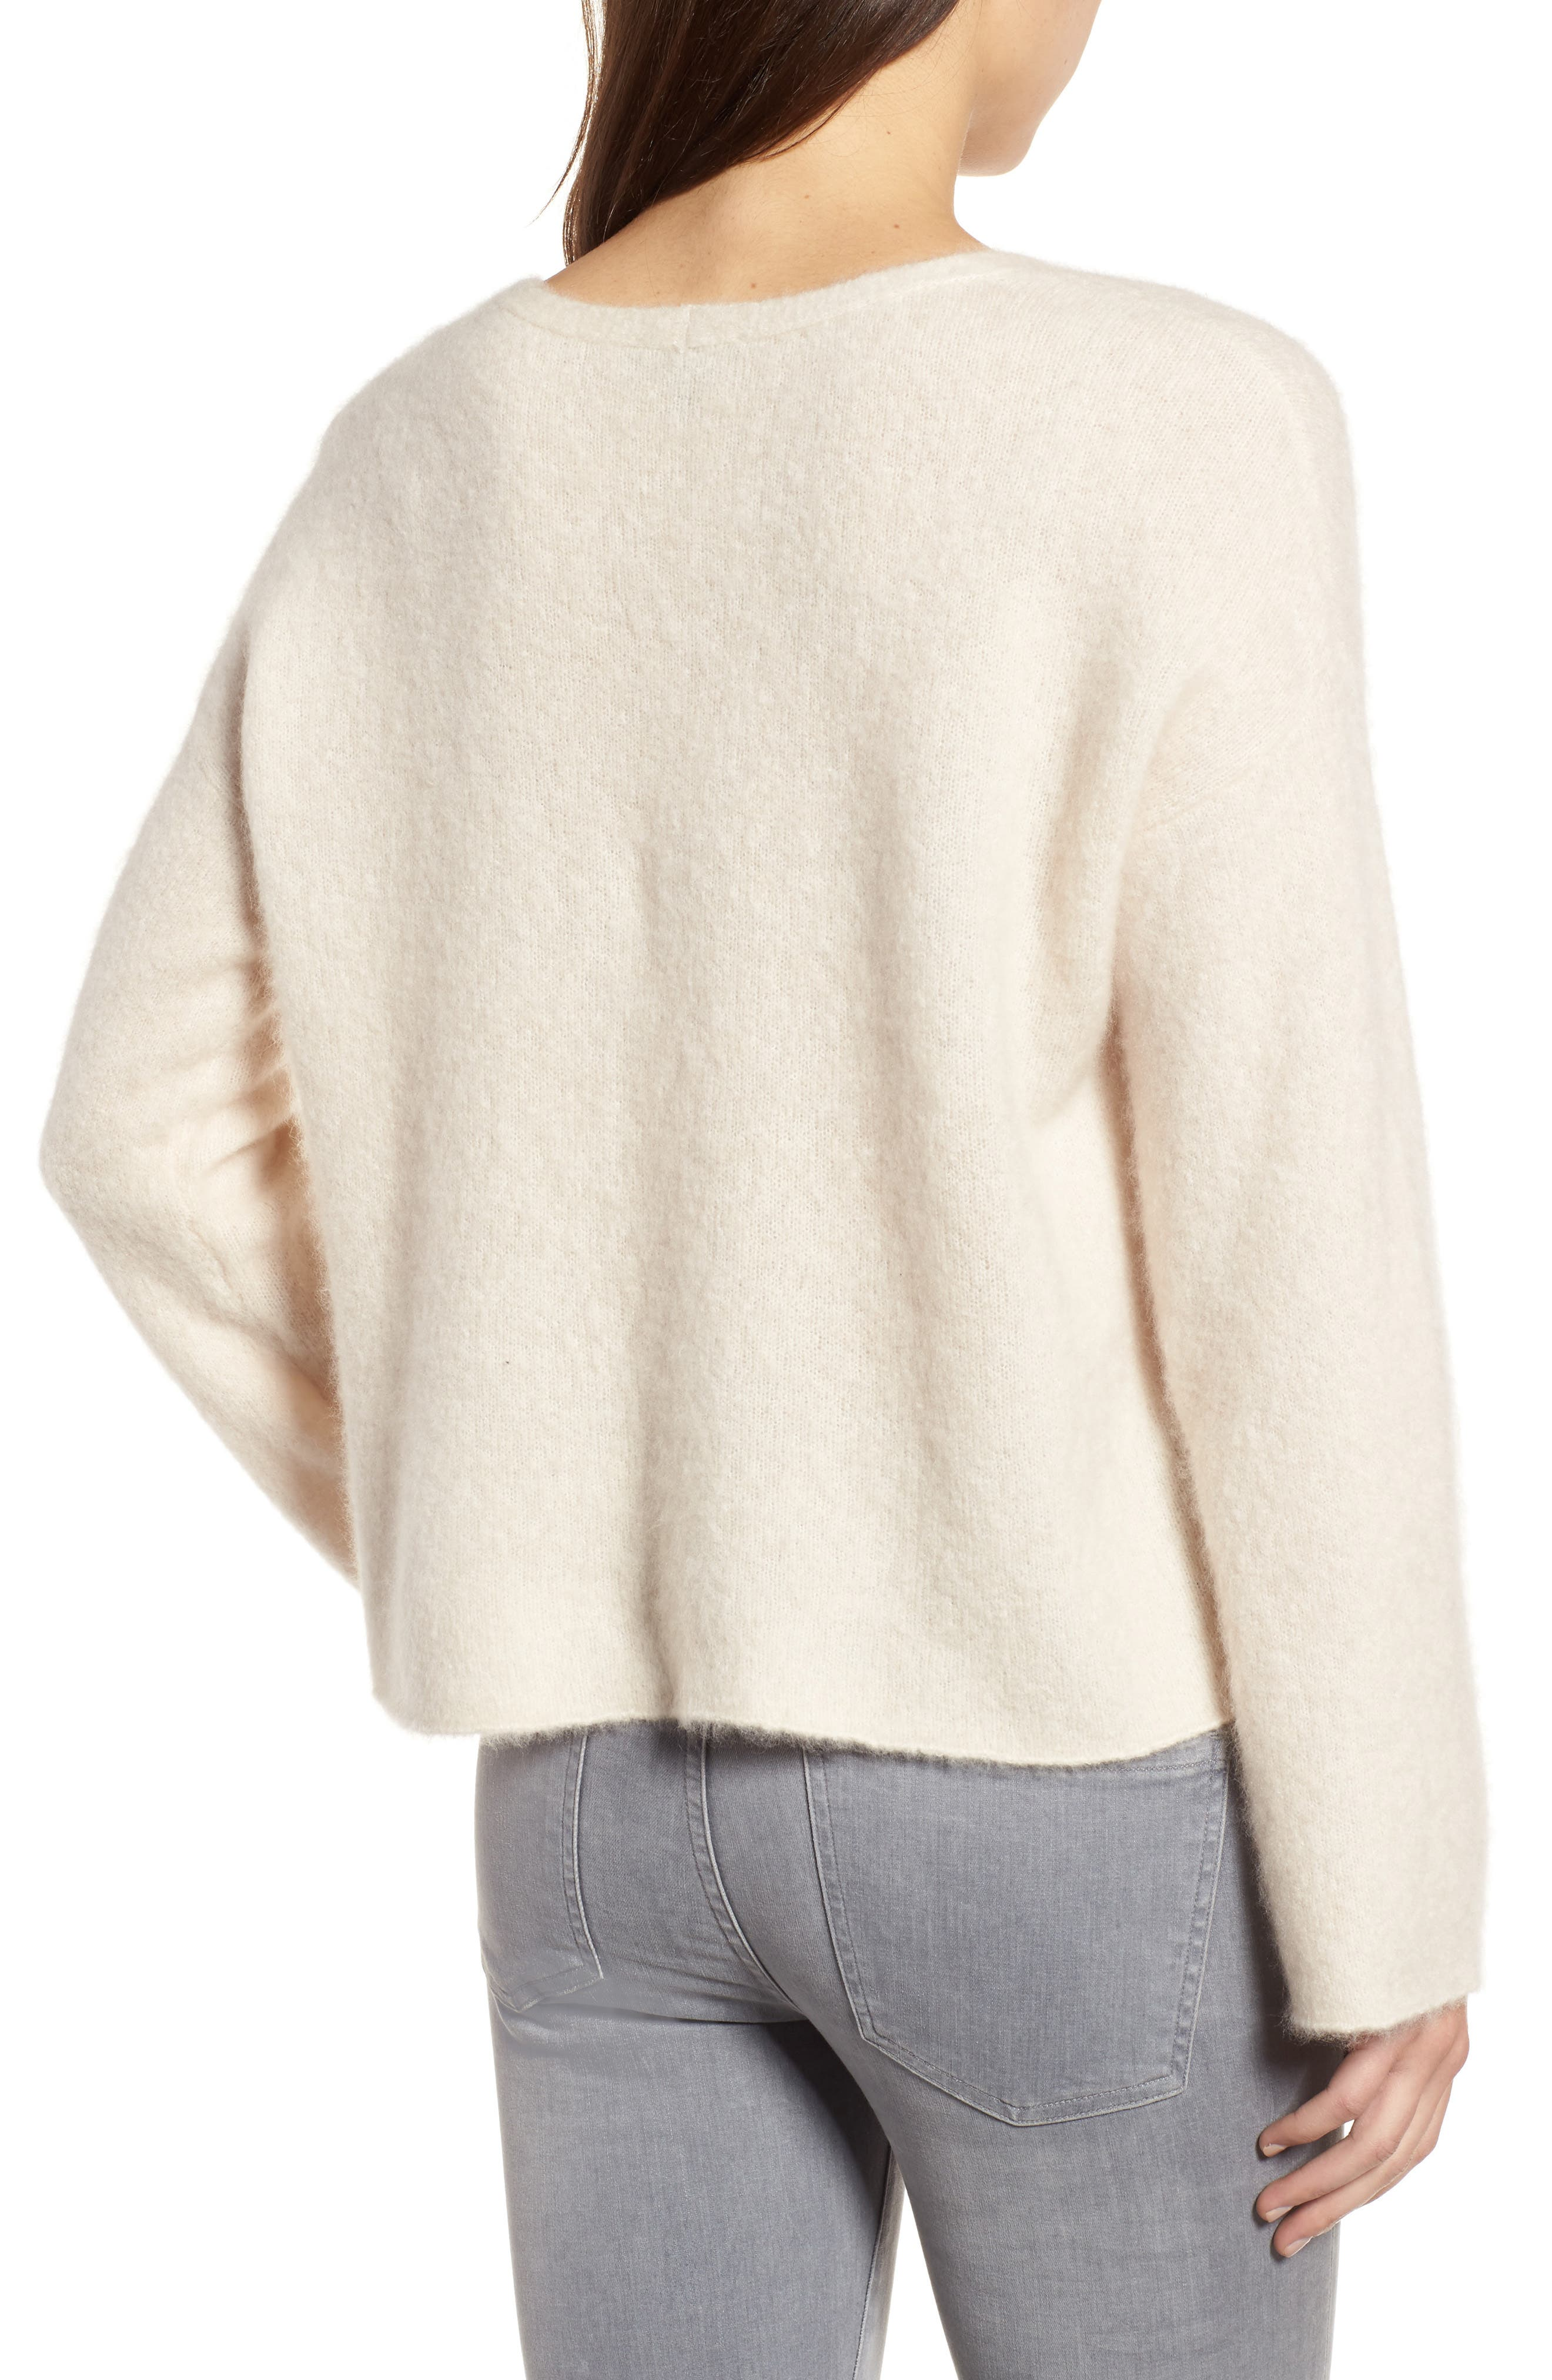 Boxy Cashmere Blend Sweater,                             Alternate thumbnail 2, color,                             103